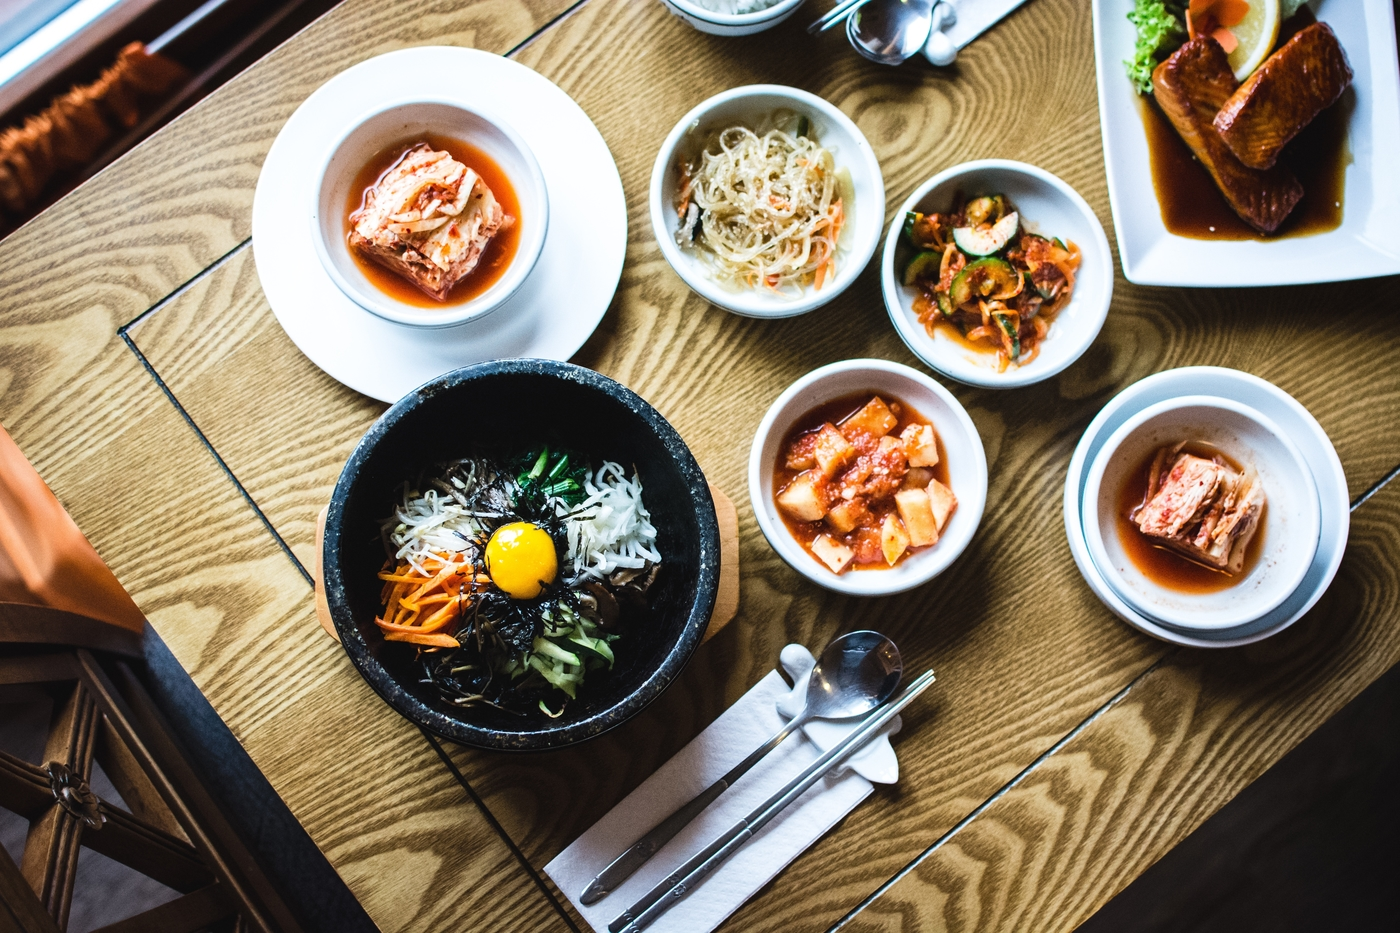 These are hands down the best Korean restaurants in Hong Kong